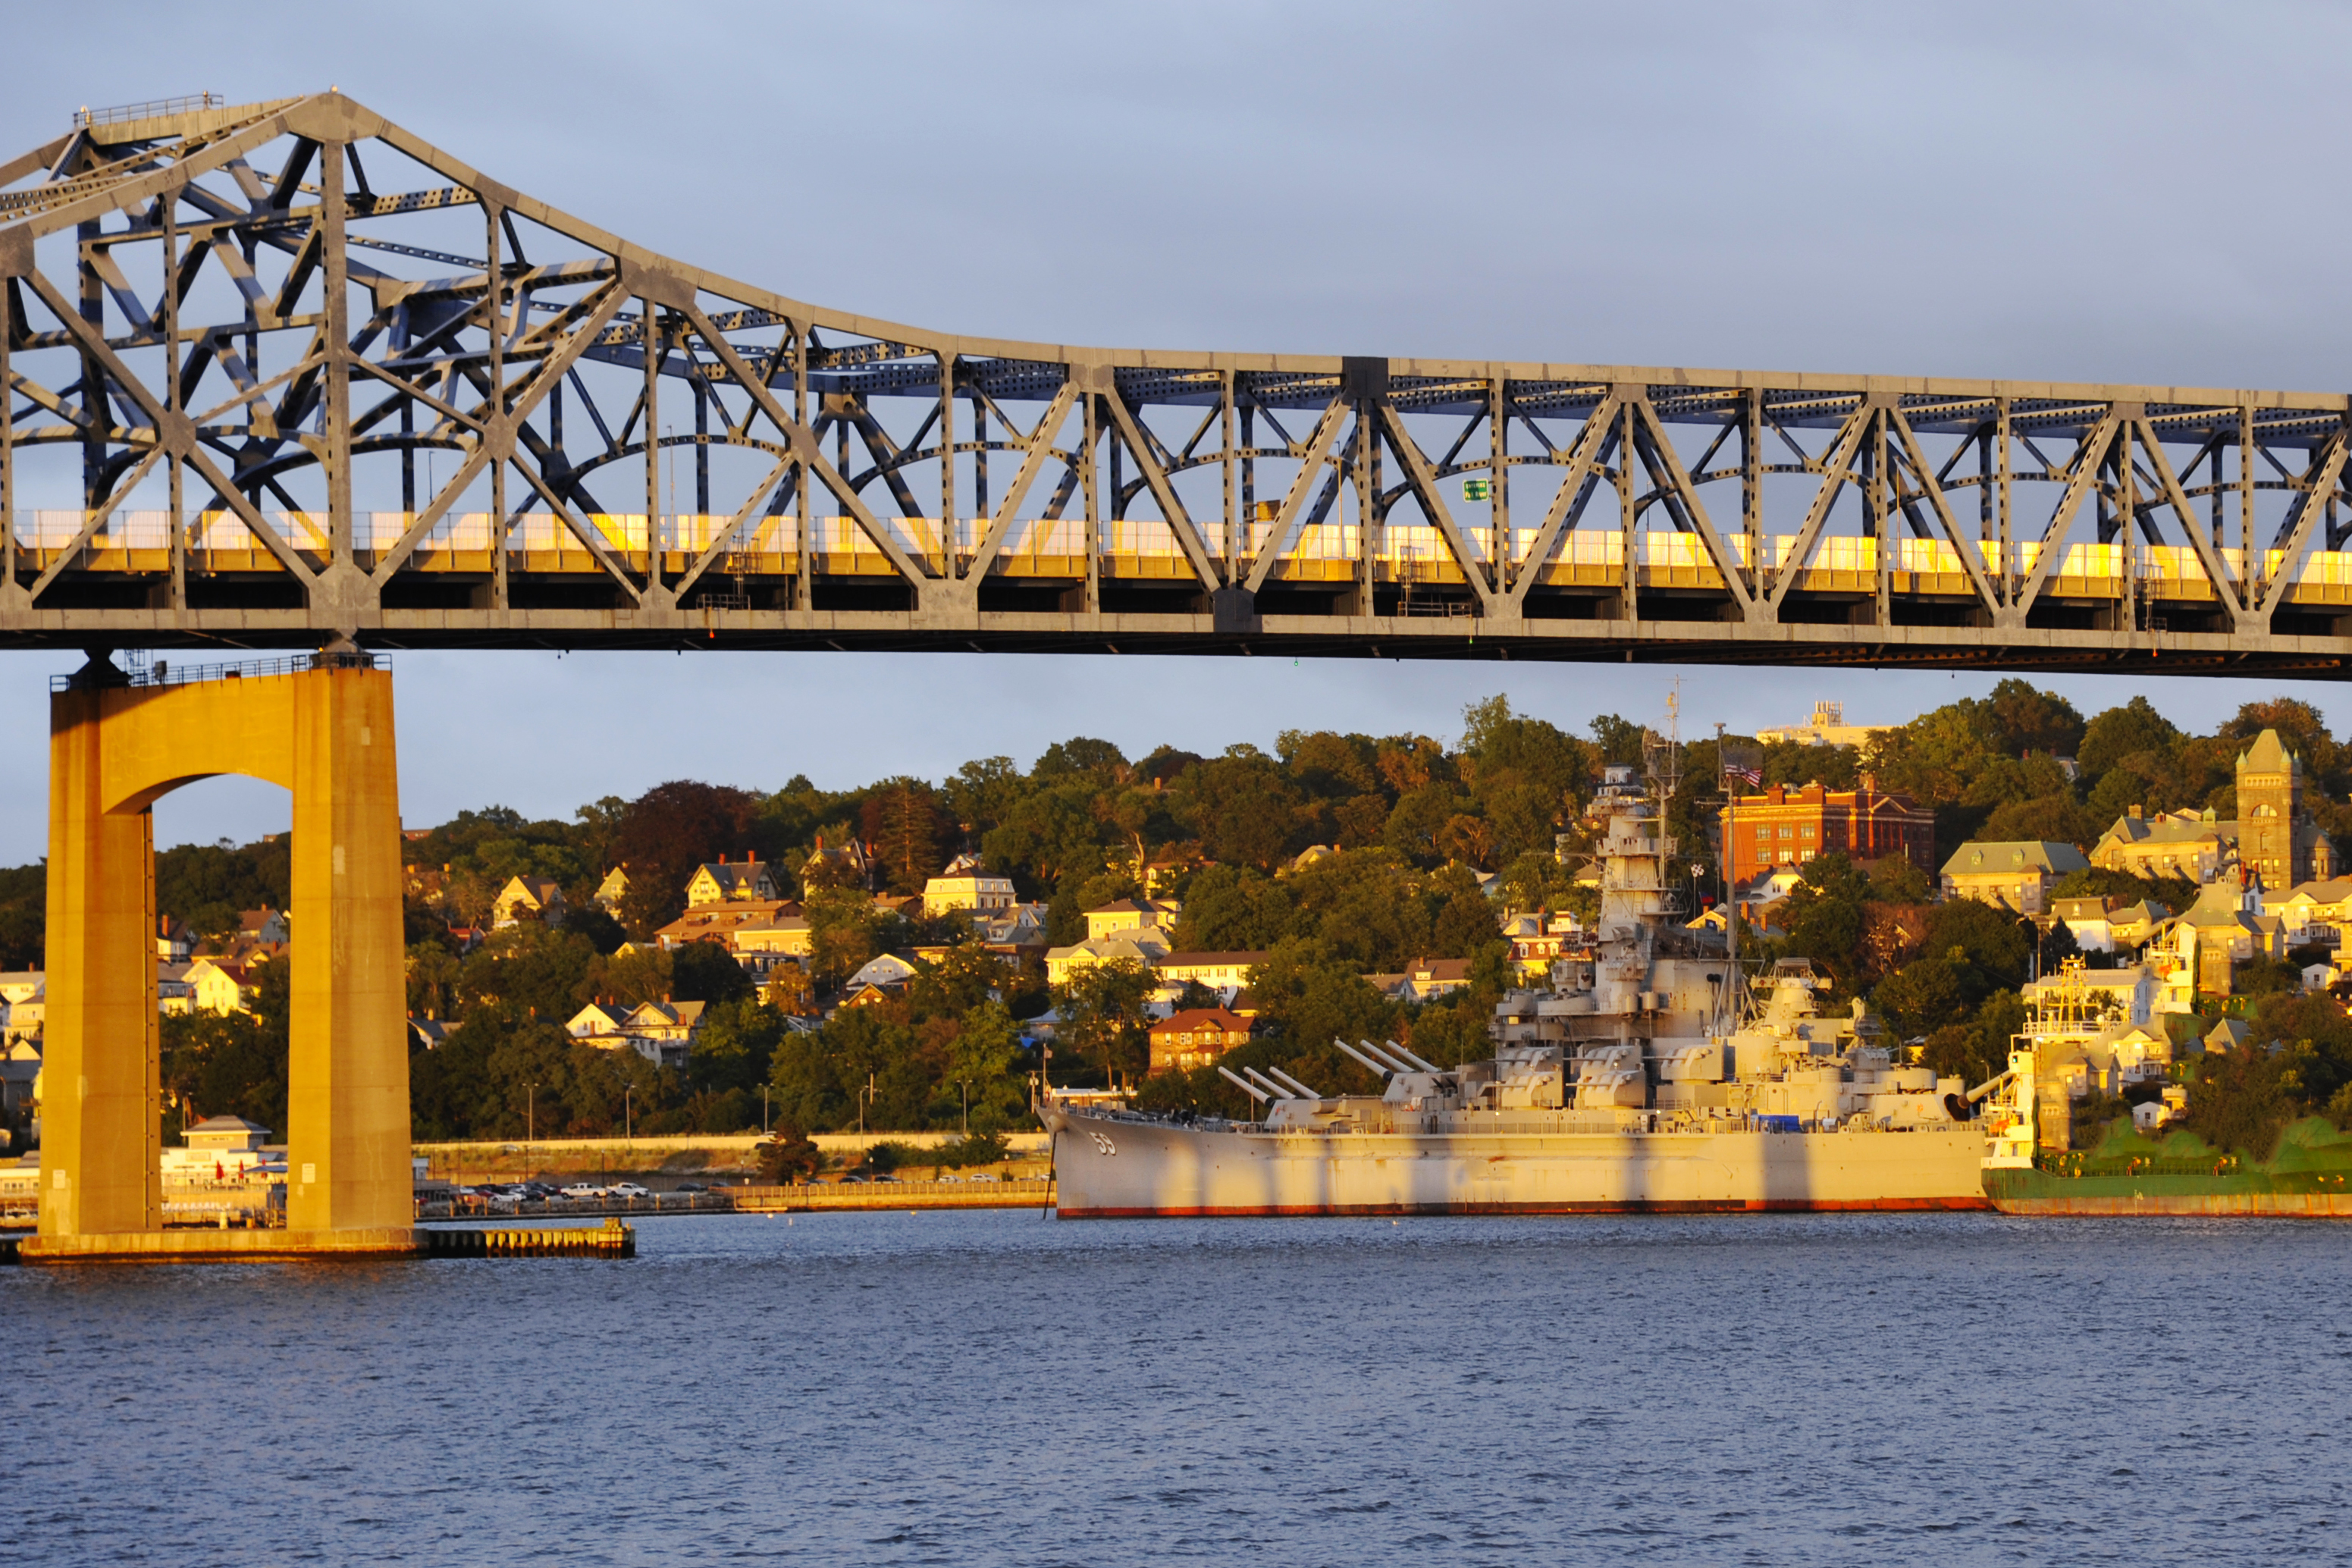 Setting Sun Illuminates Battleship Under Bridge